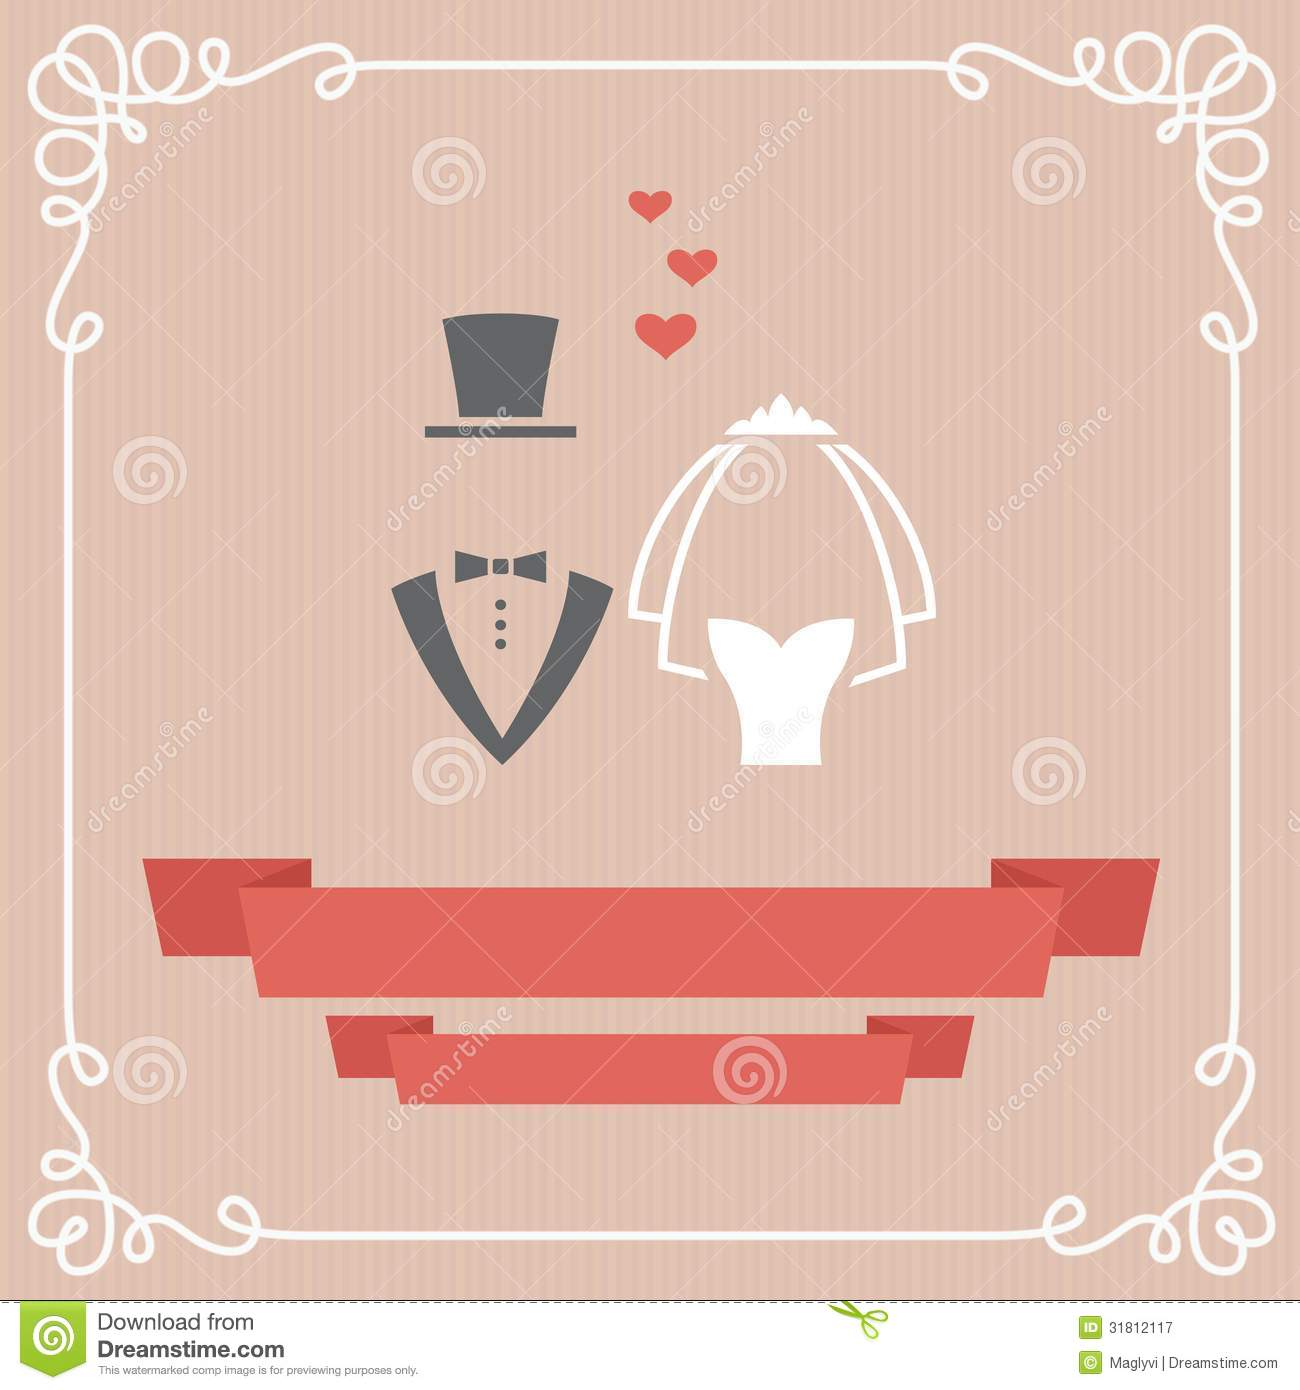 Wedding Card Romantic Decoration